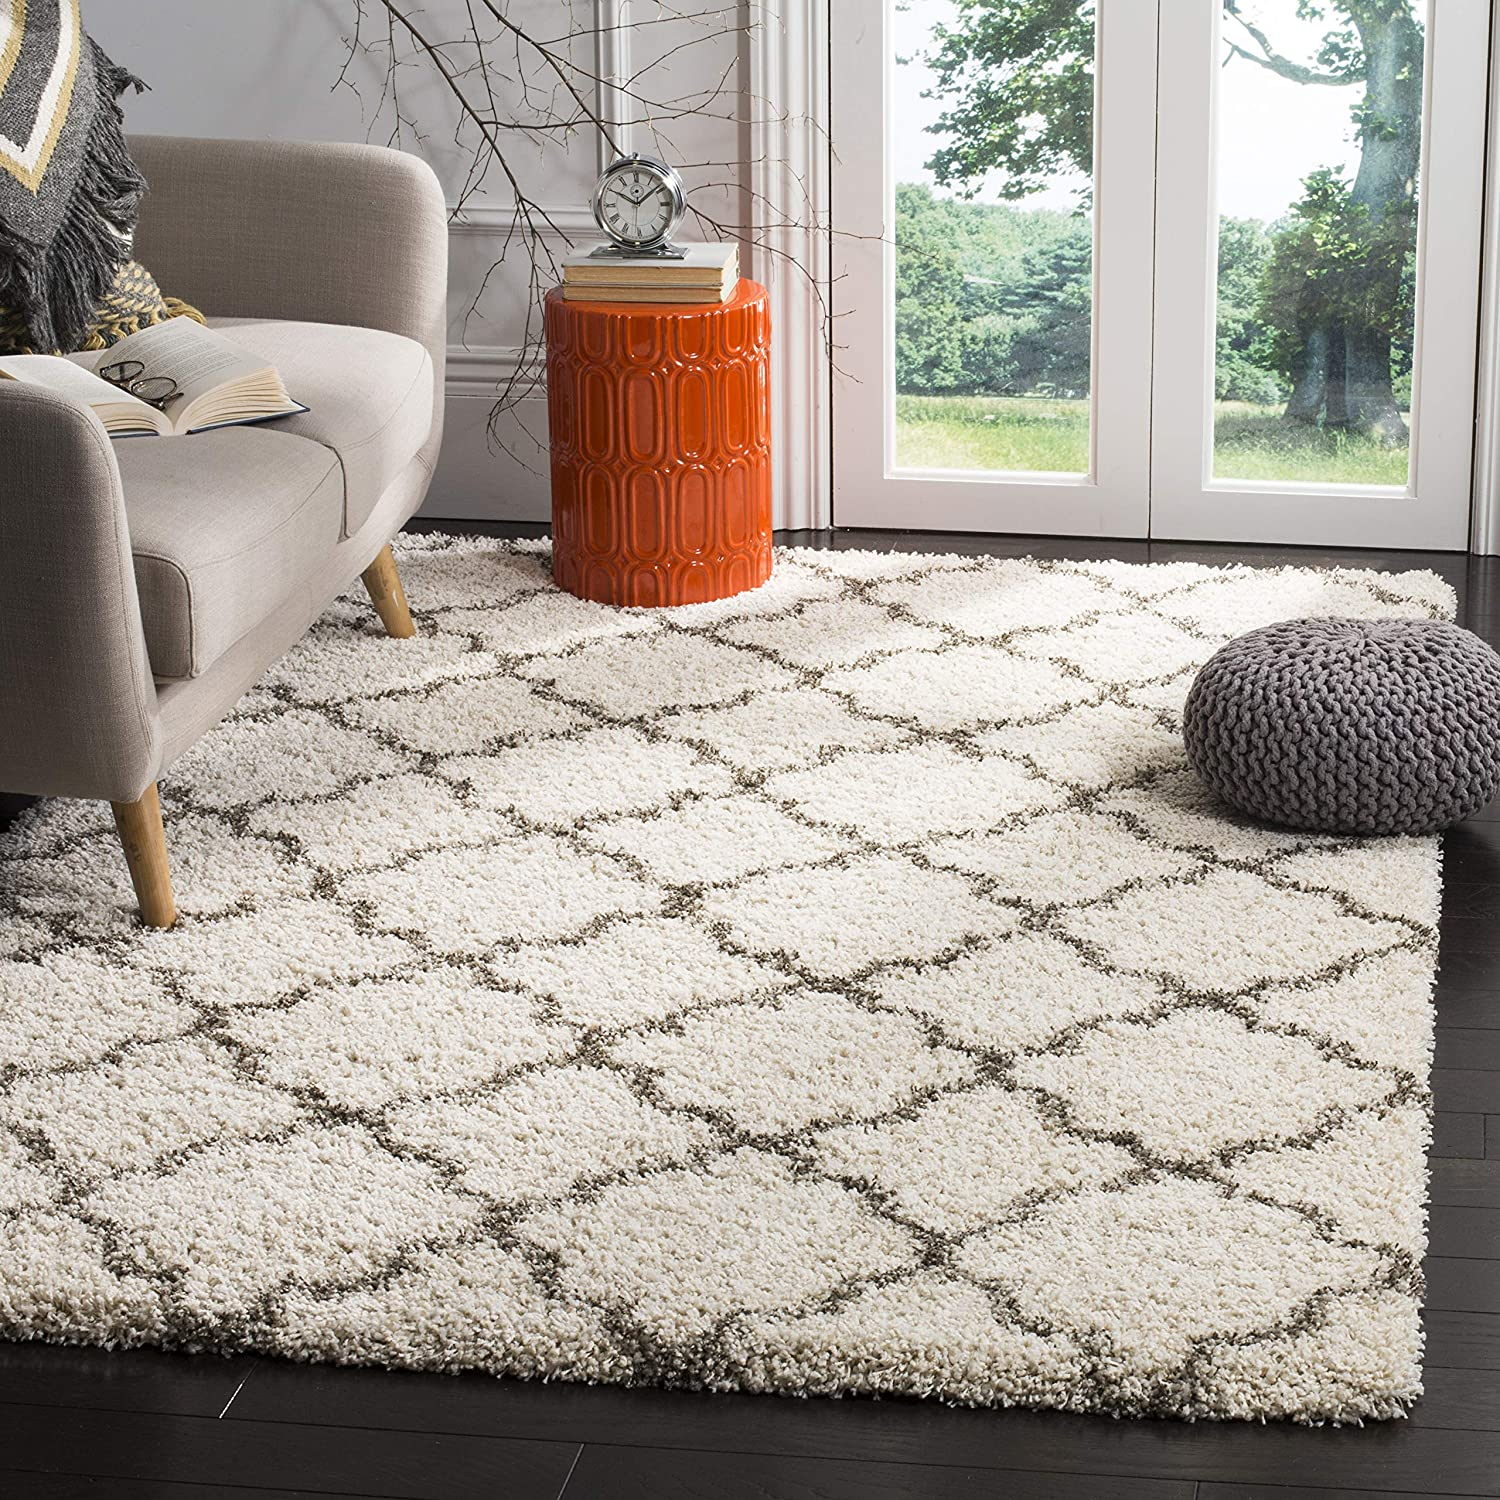 Safavieh Hudson Shag Collection SGH282A Moroccan Trellis 2-inch Thick Area Rug, 9' x 12', Ivory/Grey